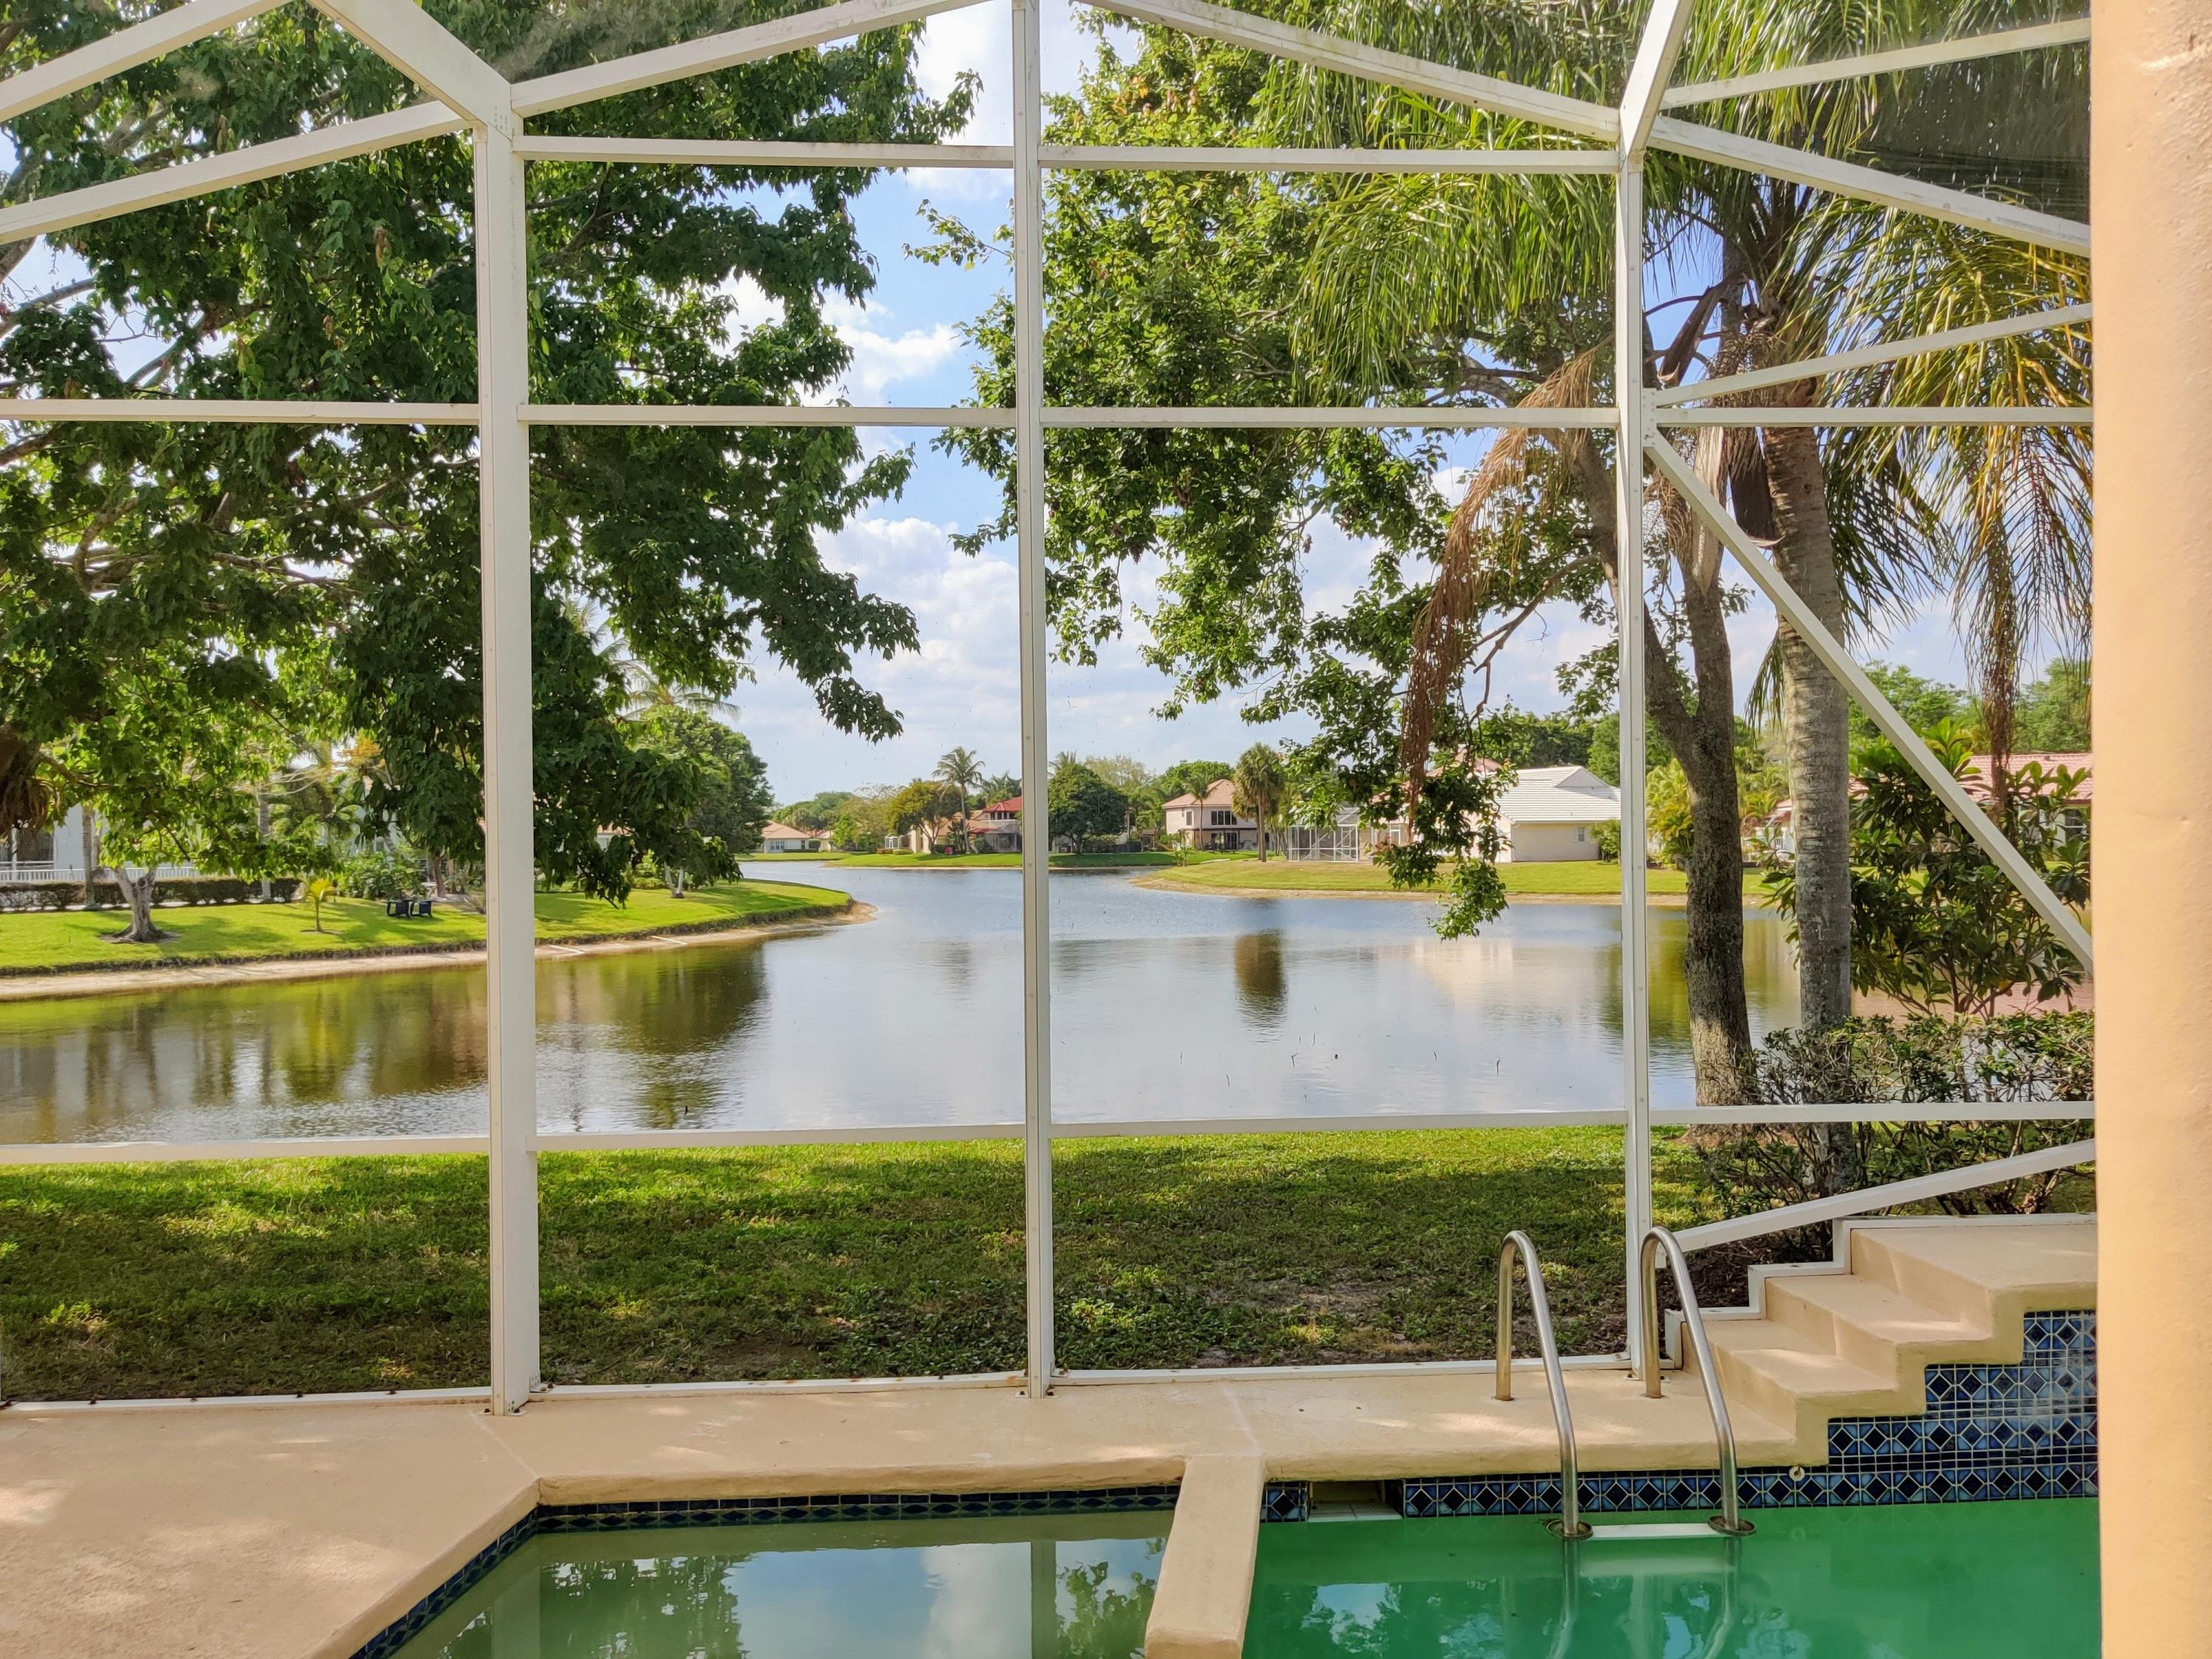 This Beautiful classic pool home overlooks a wide lake in The Shores of Jupiter. The home features high ceilings in the living, dinning, kitchen, and family room. Windows above the front entree door and sliding doors makes this home exceptionally light and bright. The home has three bedrooms plus a den for that extra office or guest room.